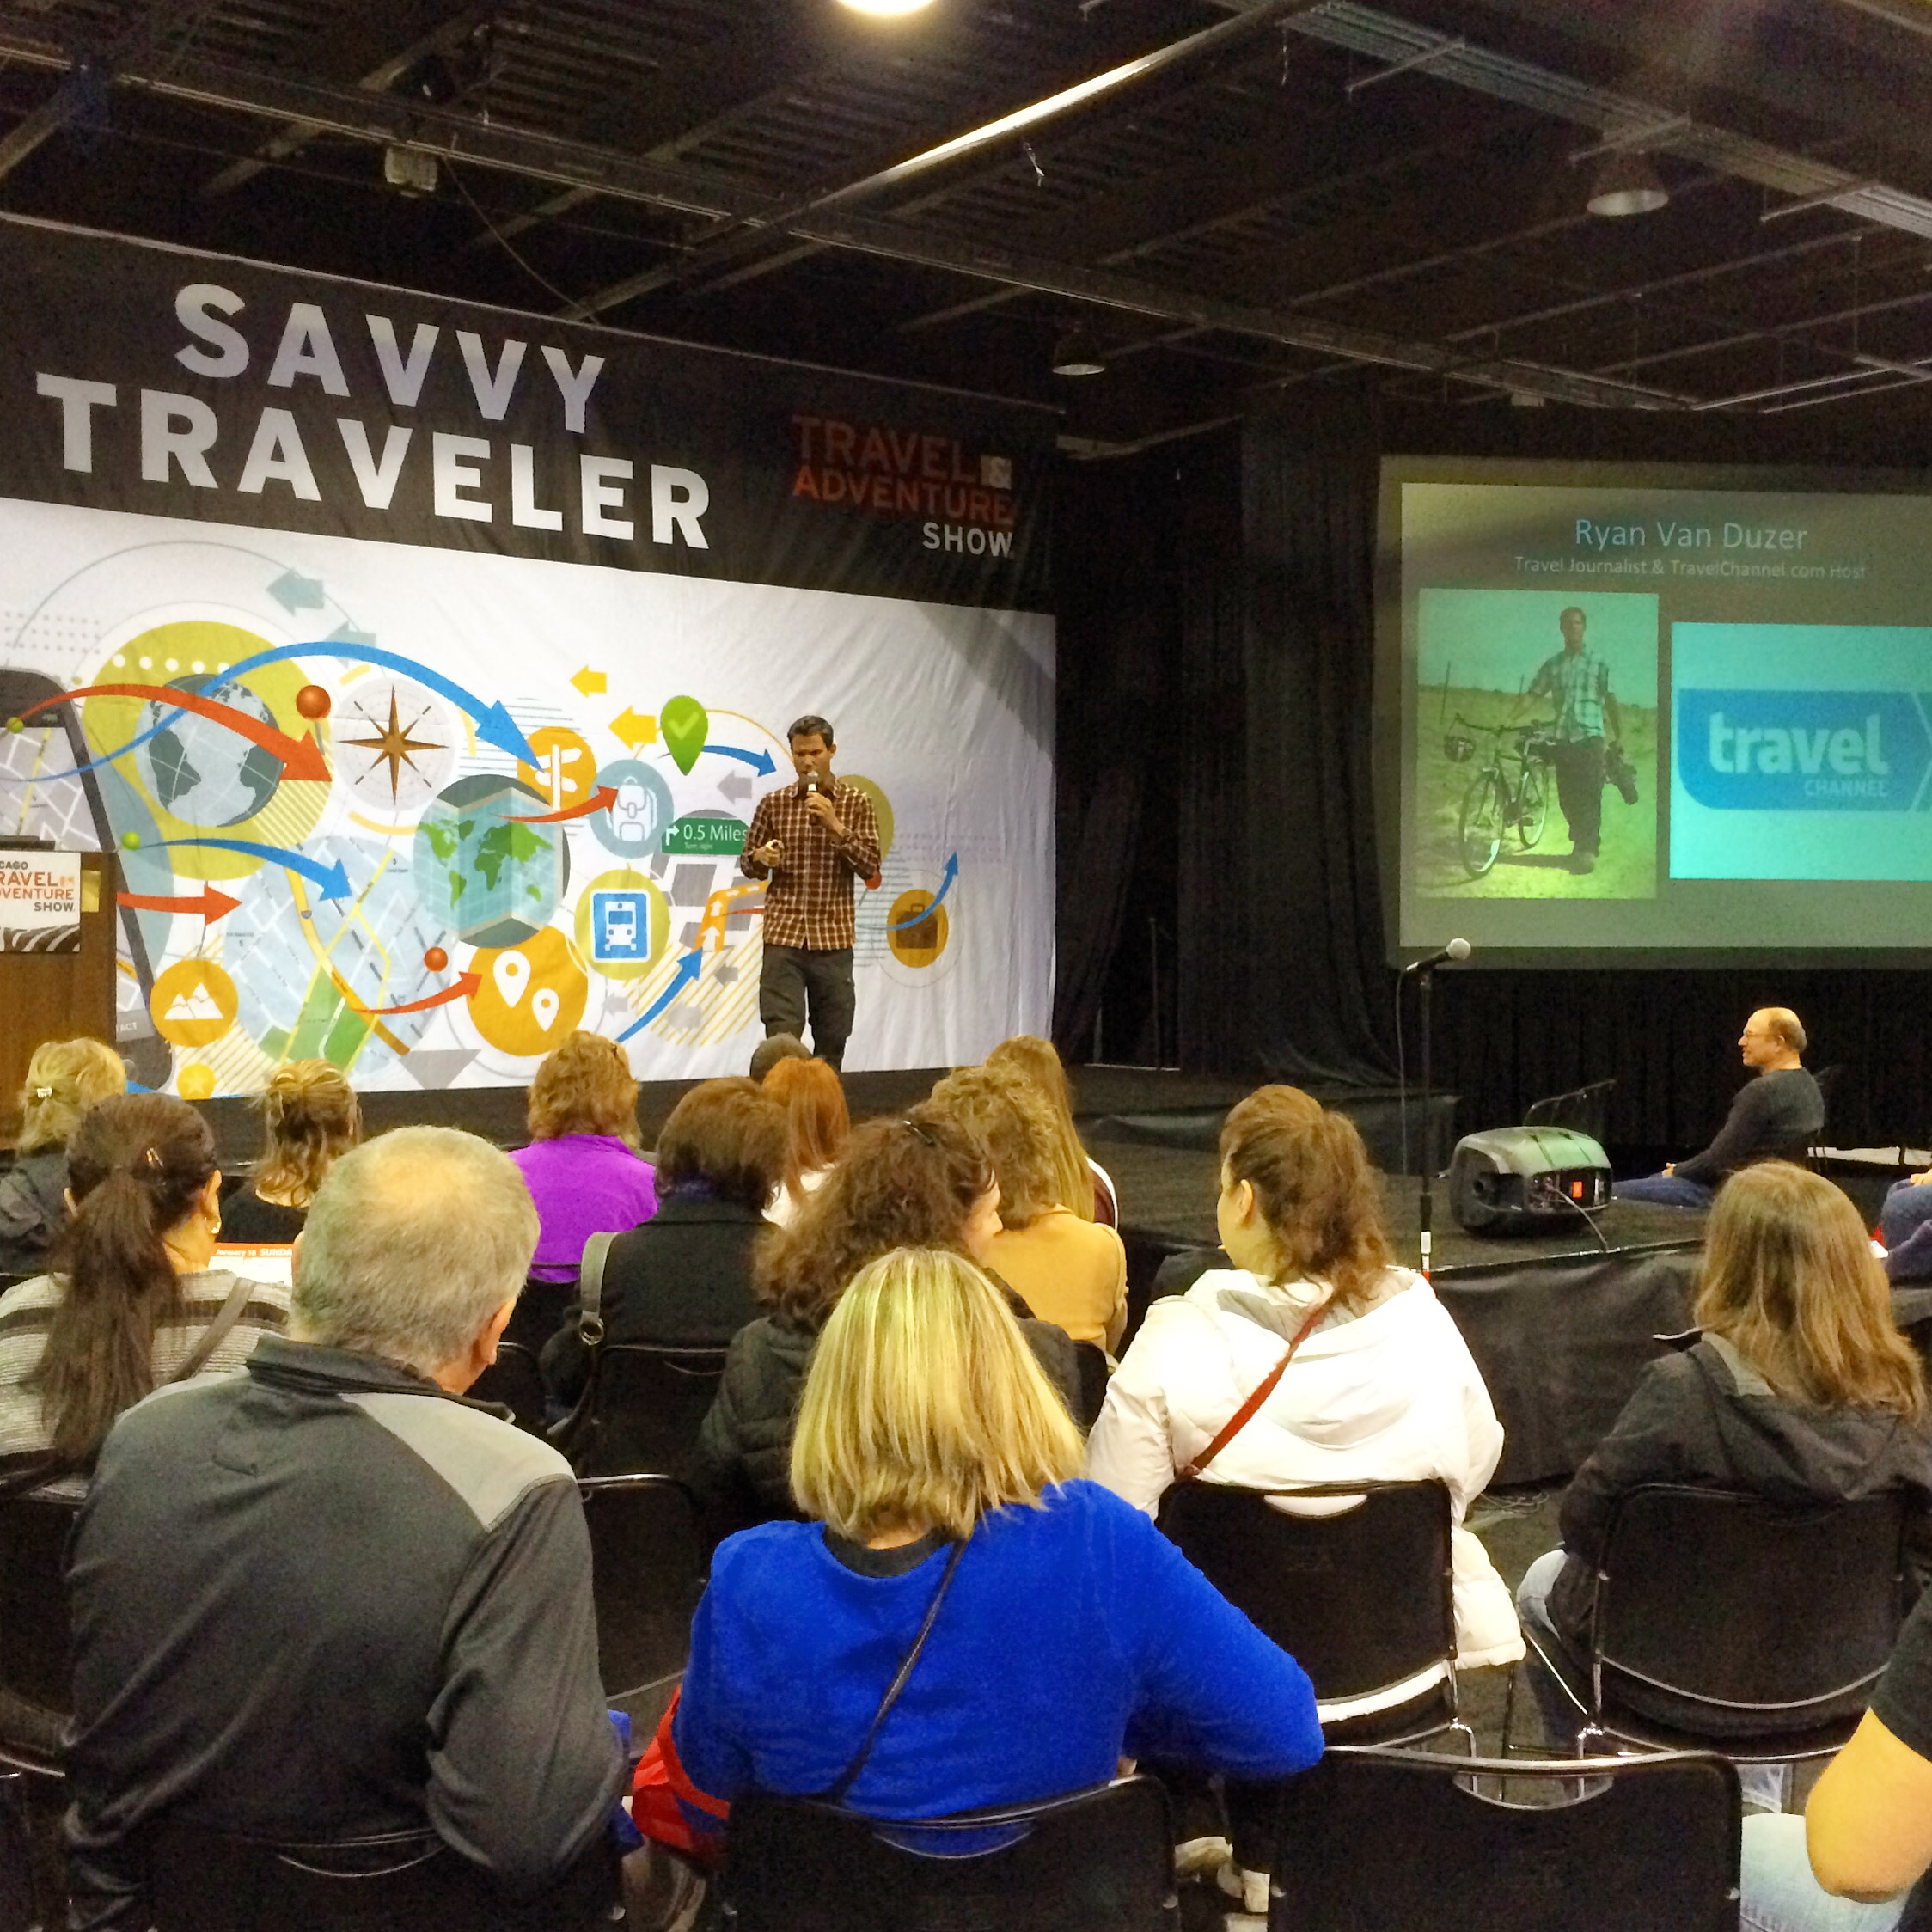 Speaking about my travel experiences on behalf of Travel Channel at the Travel and Adventure show in Washington D.C.